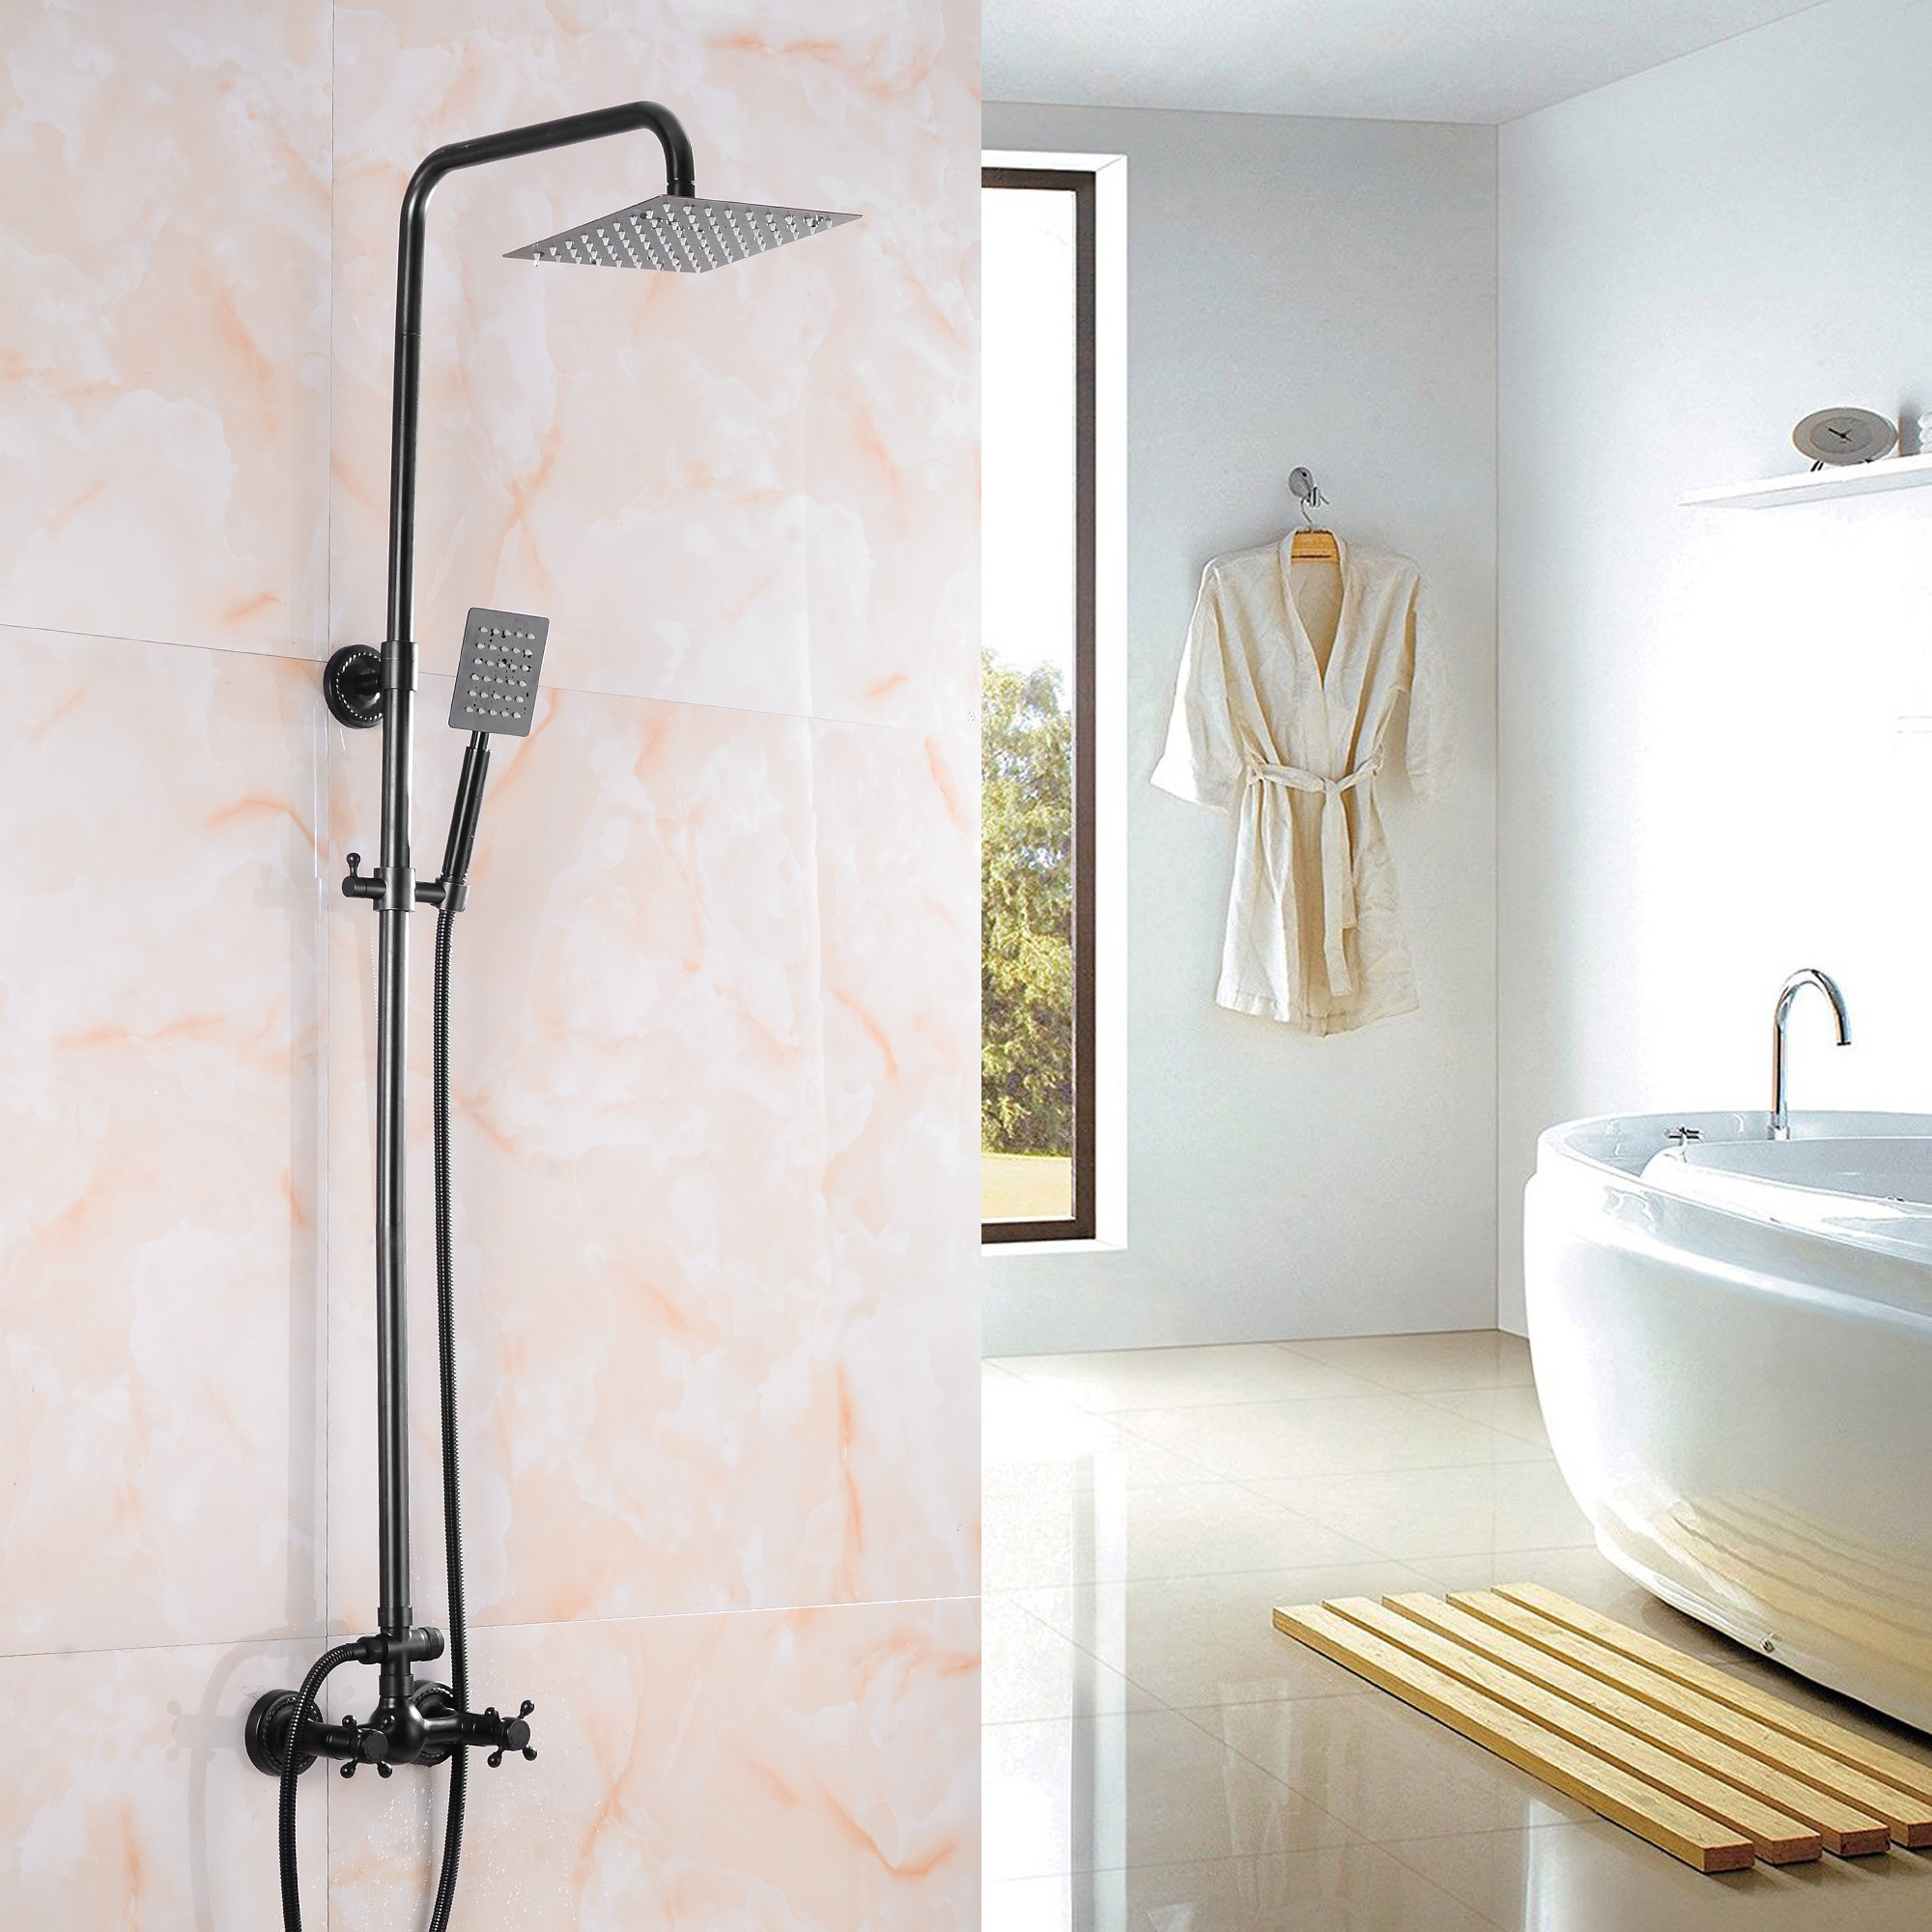 Best Rated in Bathtub & Shower Systems & Helpful Customer Reviews ...